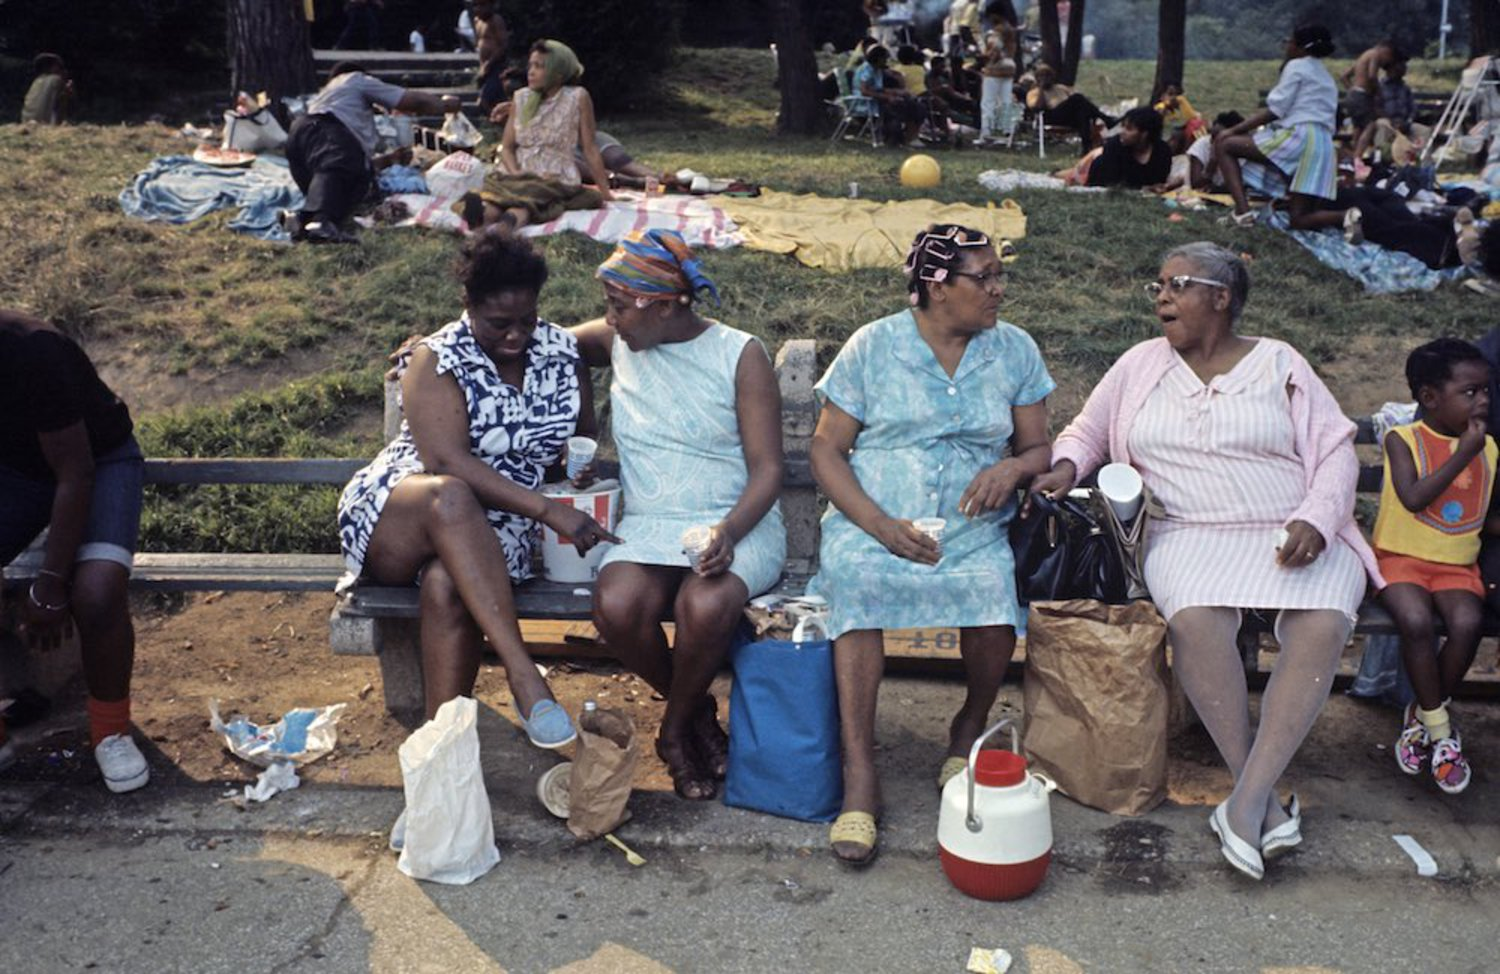 Harlem in the 1970's, as Photographed by Jack Garofalo